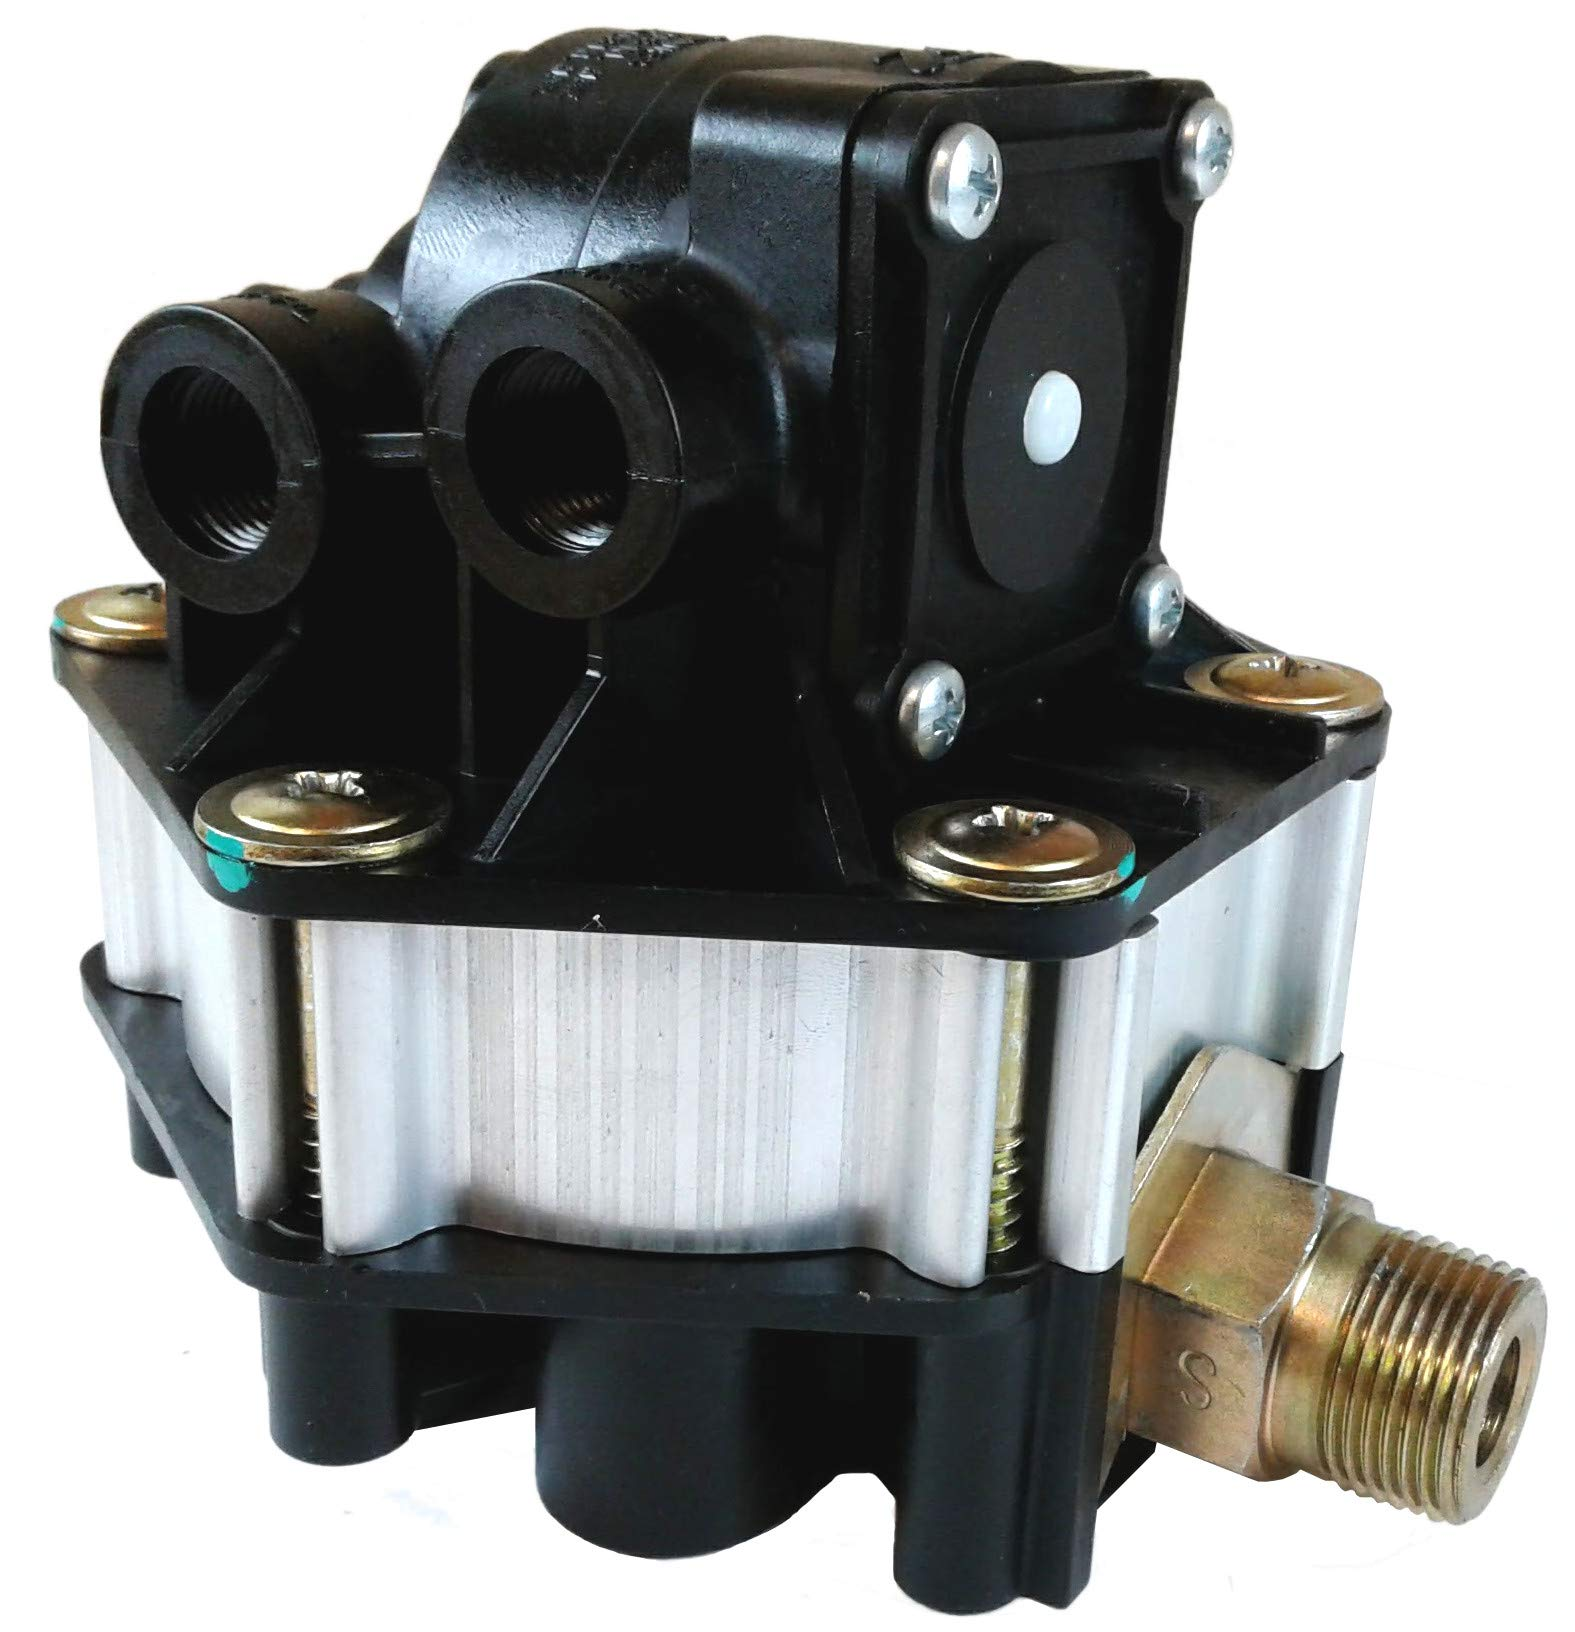 FF2 Full Function Trailer Brake Valve - 3/4'' Reservoir for Heavy Duty Big Rigs by Brianna Auto Parts (BAP) (Image #3)